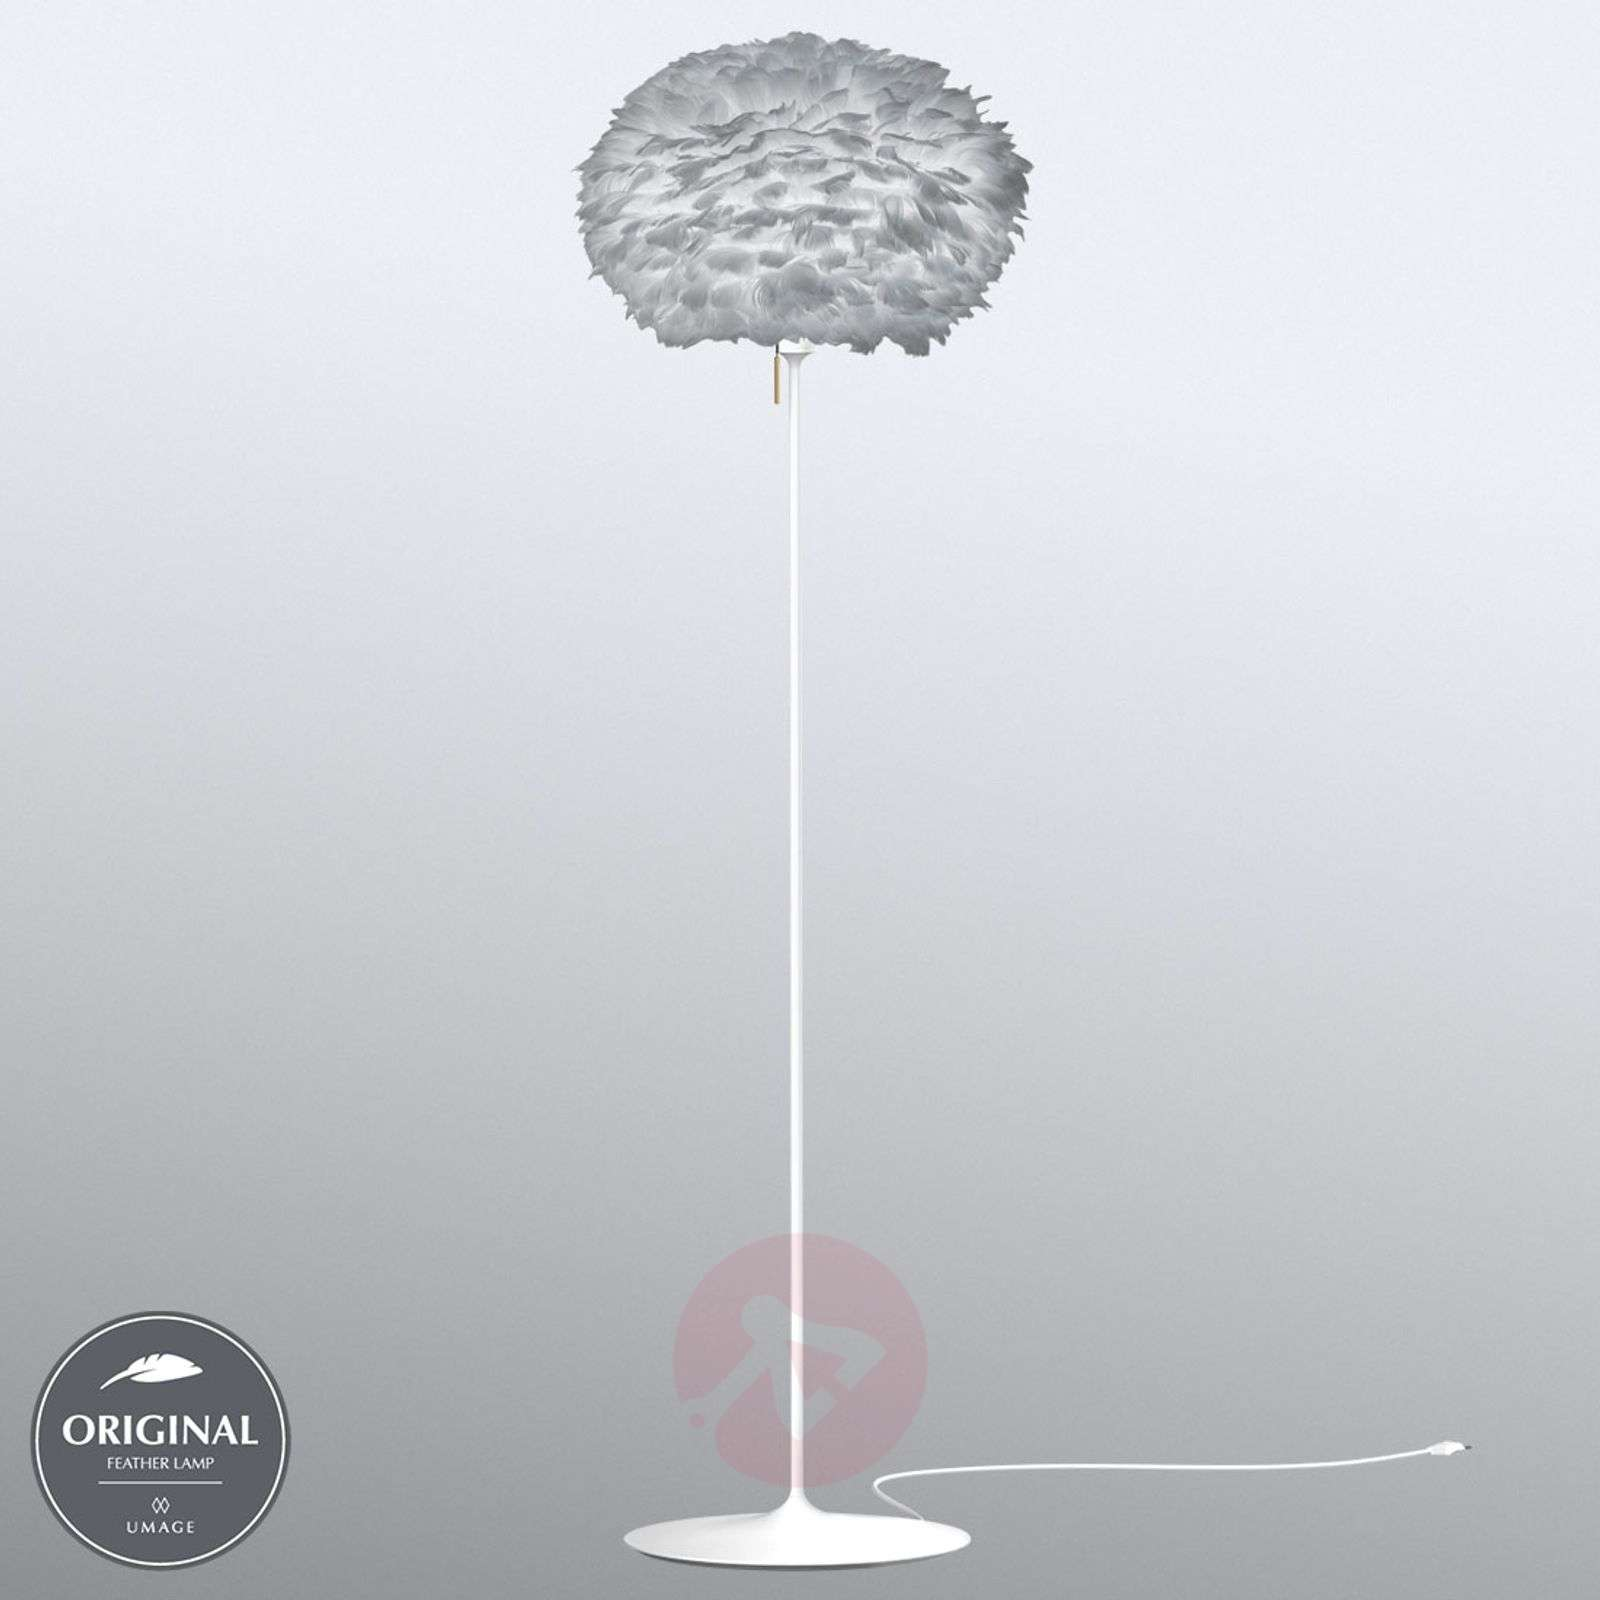 UMAGE Eos medium floor lamp, light grey-9521116-01